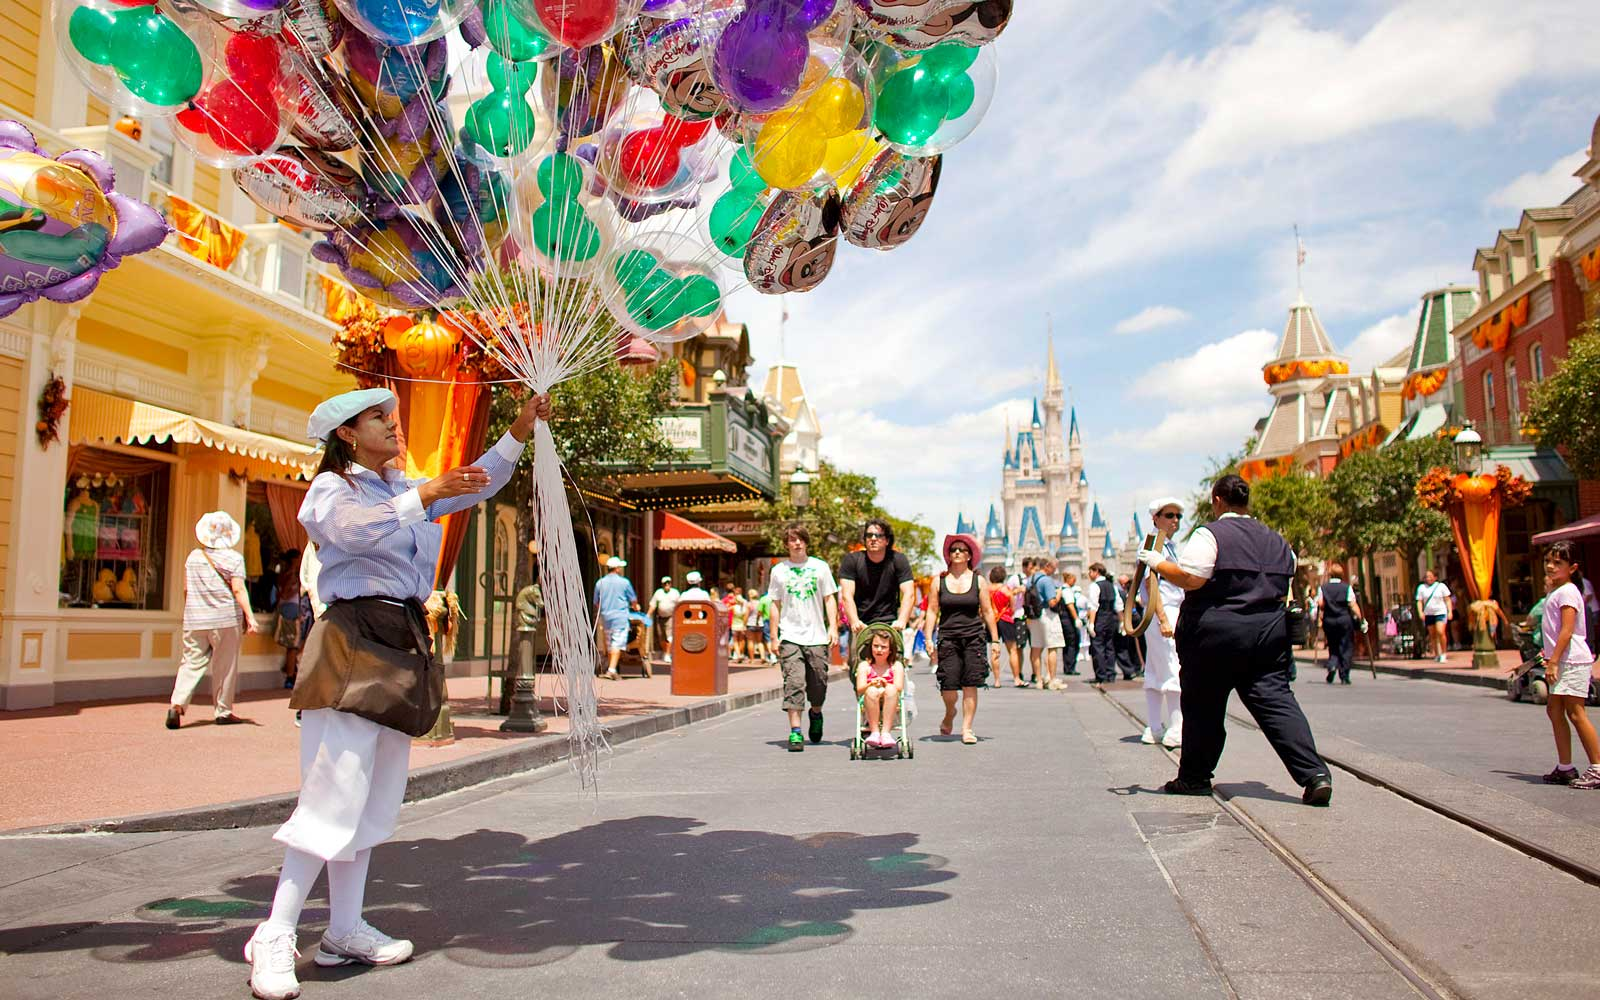 All Disney Cast Members Have to Follow This One Major Rule to Keep the Parks Clean